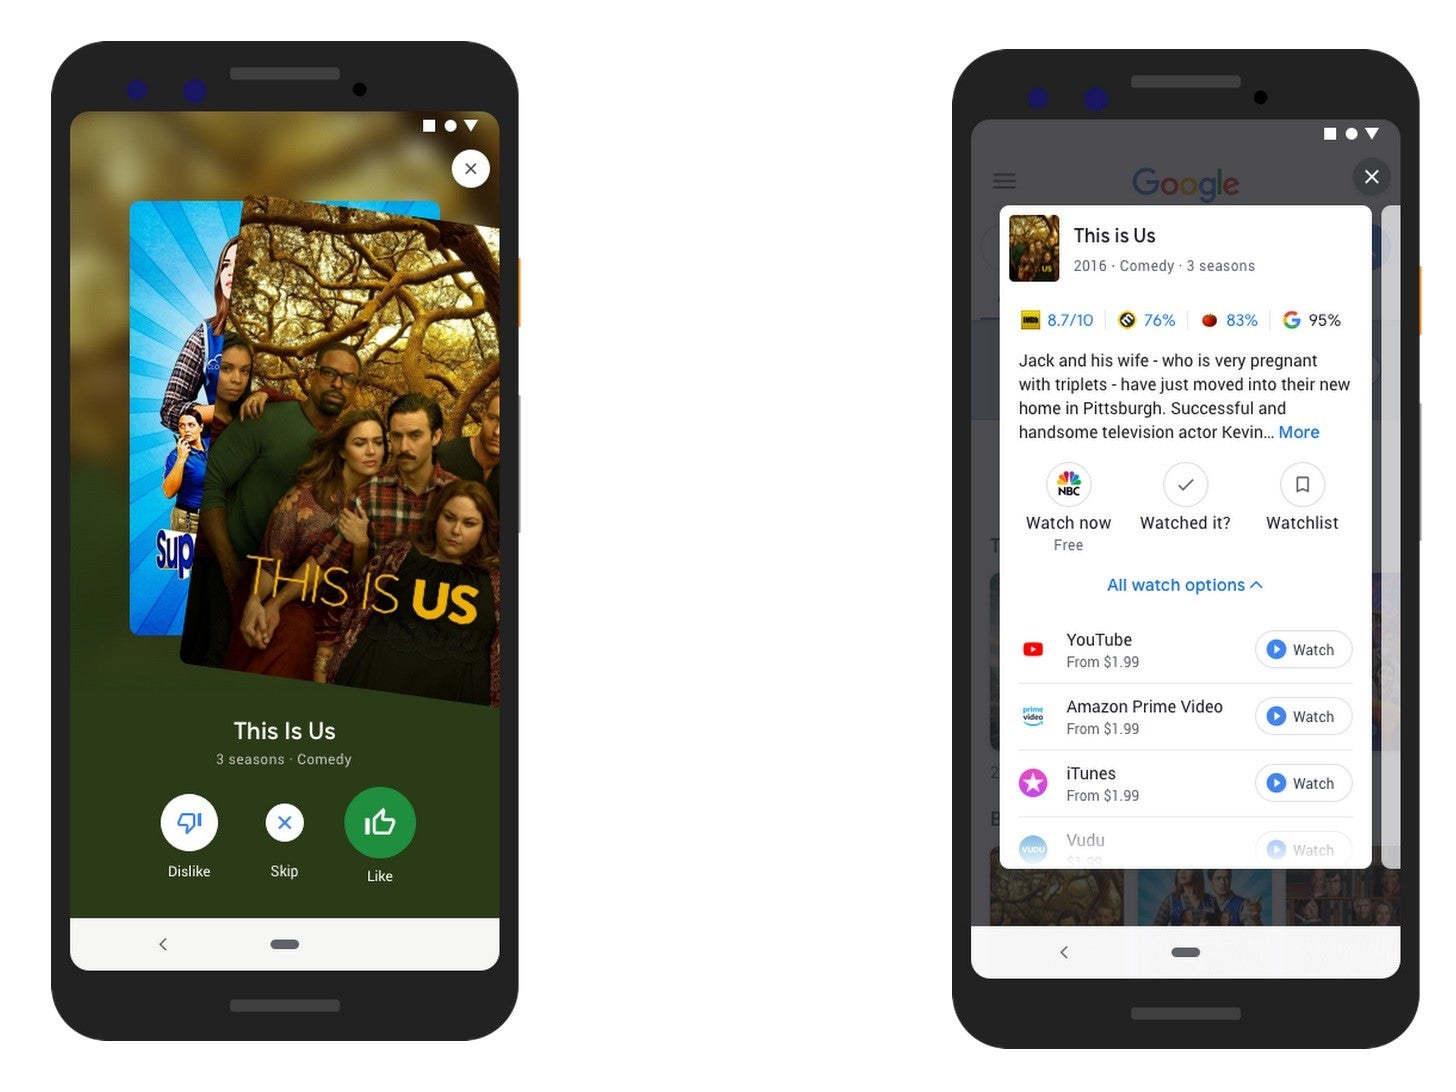 Google search tool lets you do Tinder-style swiping to find